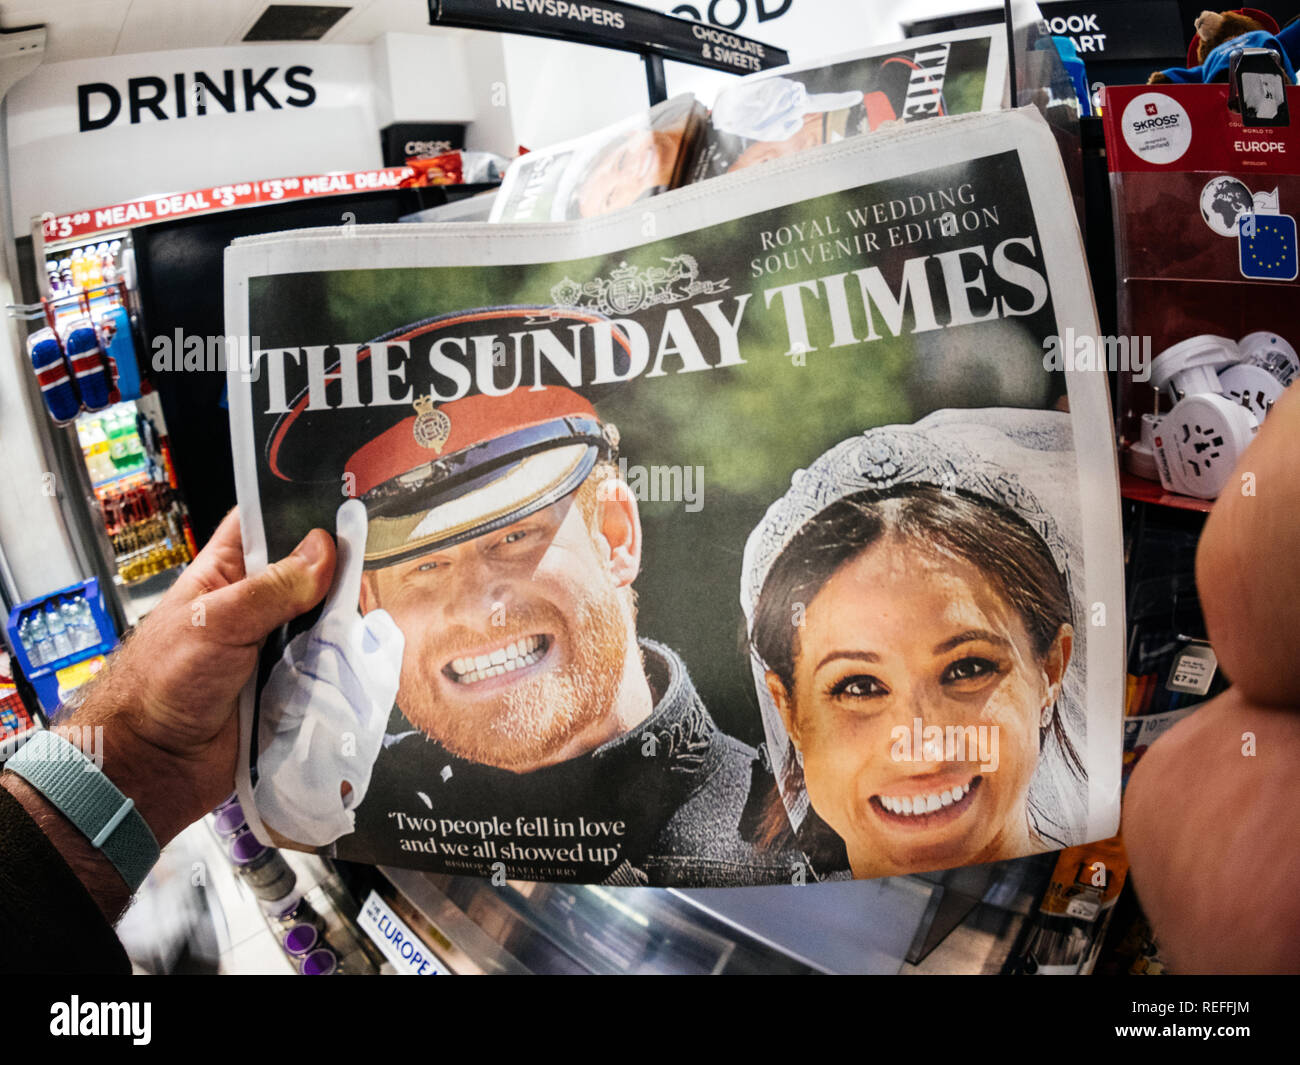 LONDON, ENGLAND - MAY 20, 2018: POV The Sunday Times front cover newspaper in British press kiosk featuring portraits of Prince Harry and Meghan Markle following the Royal Wedding lifestyle event - Stock Image